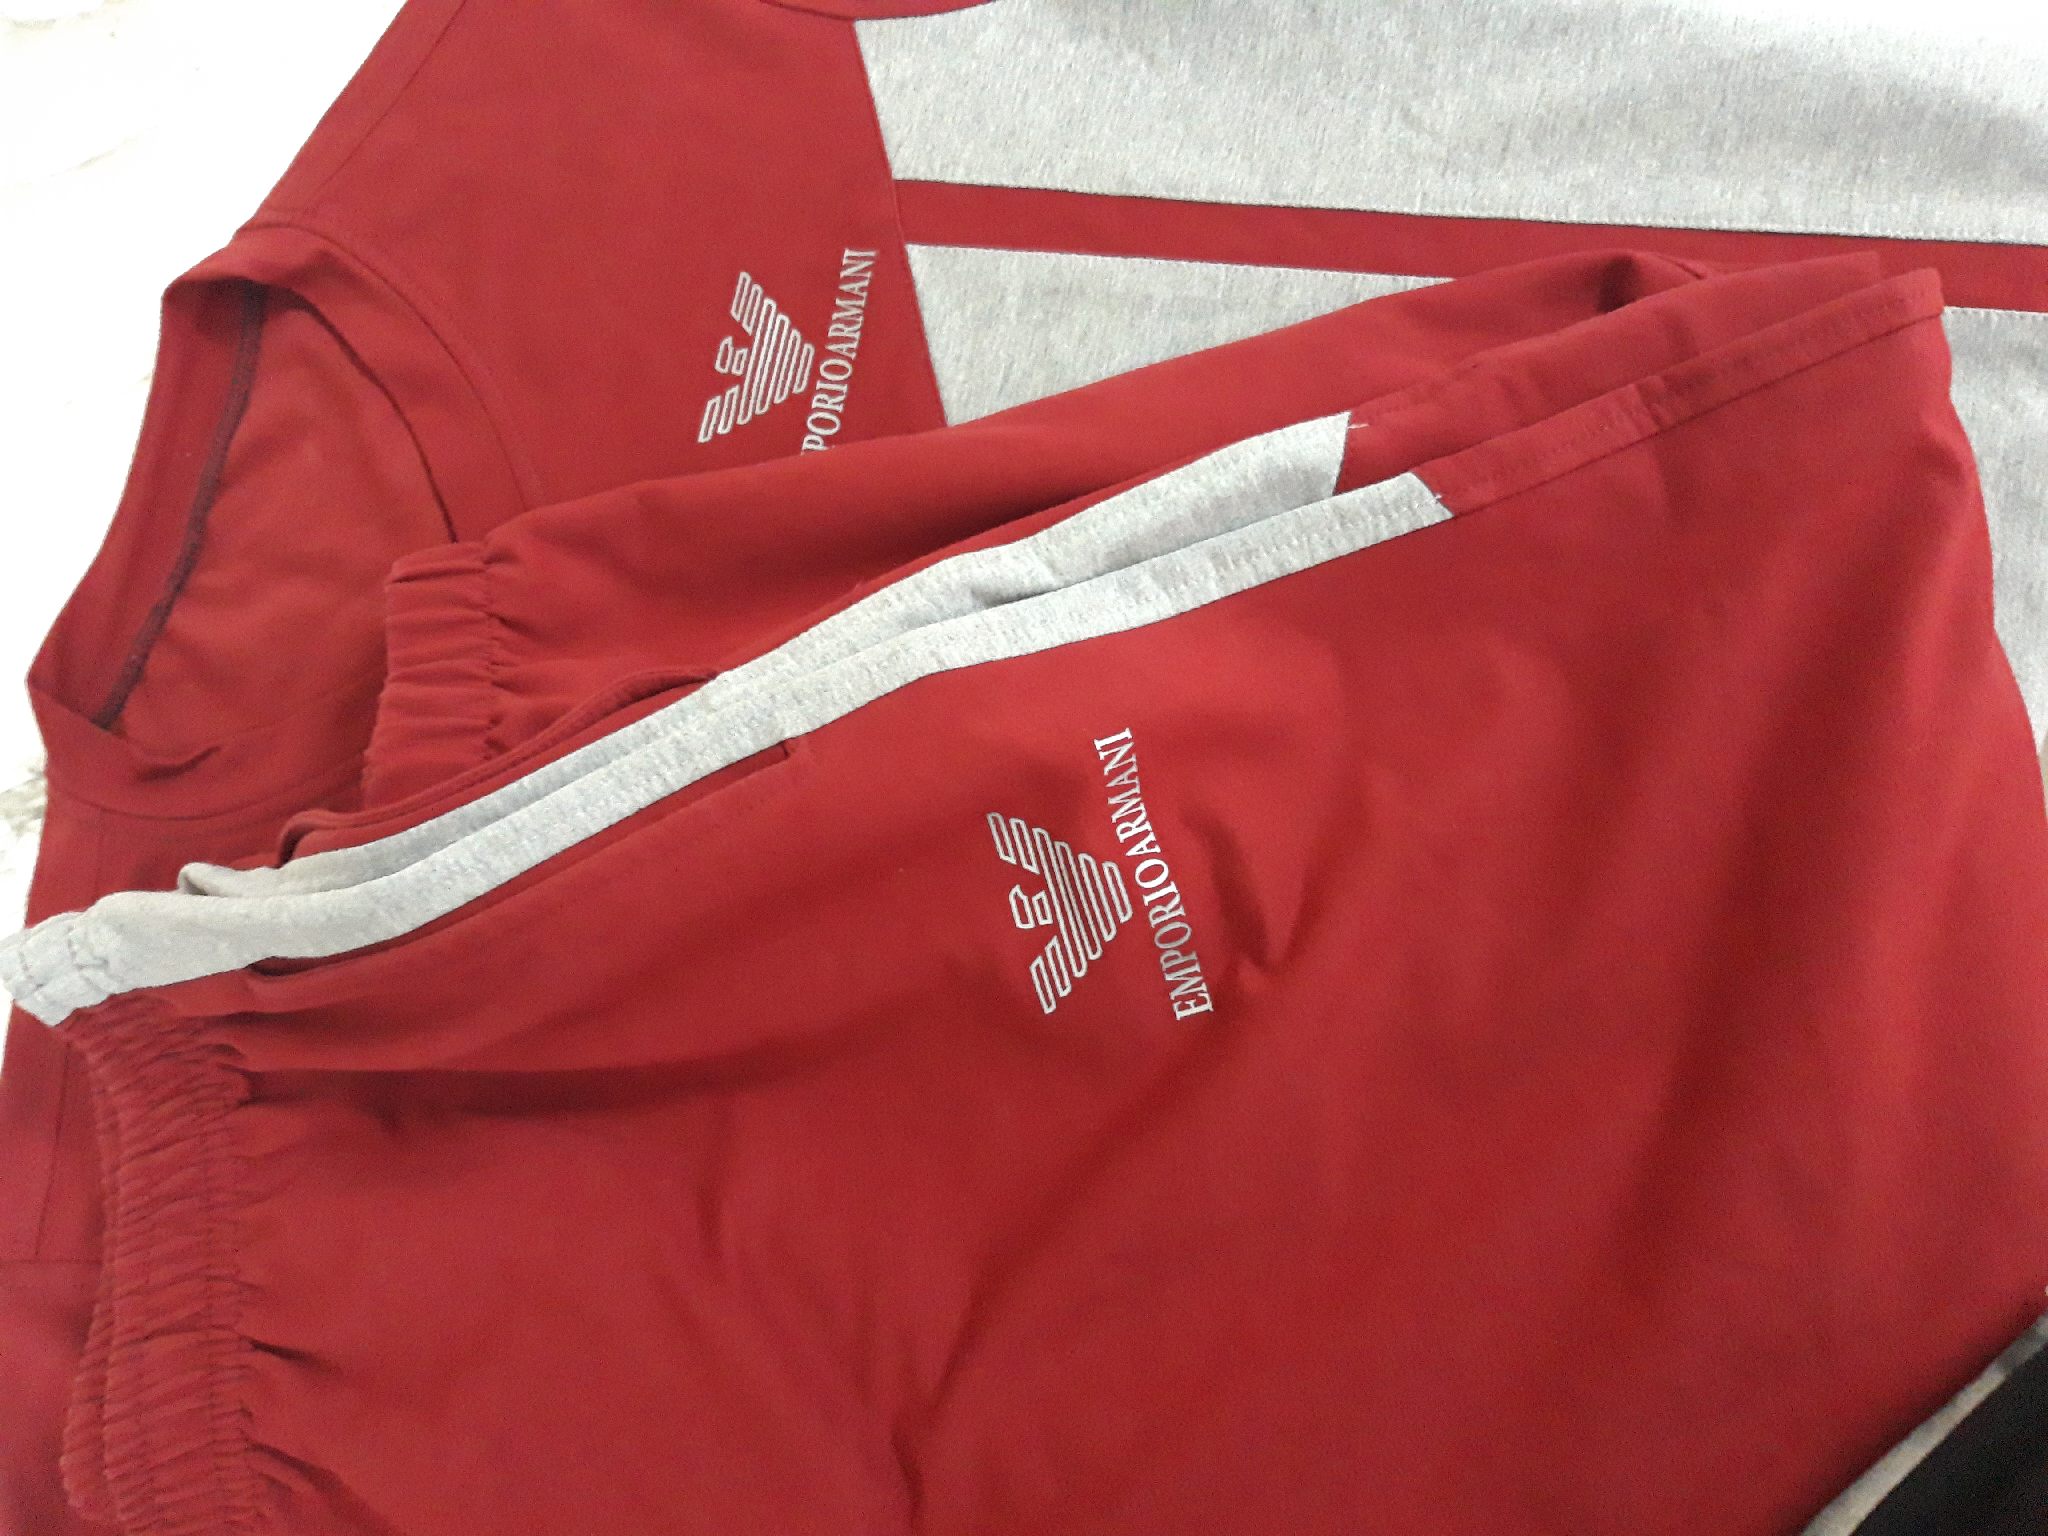 Branded clothes for sale